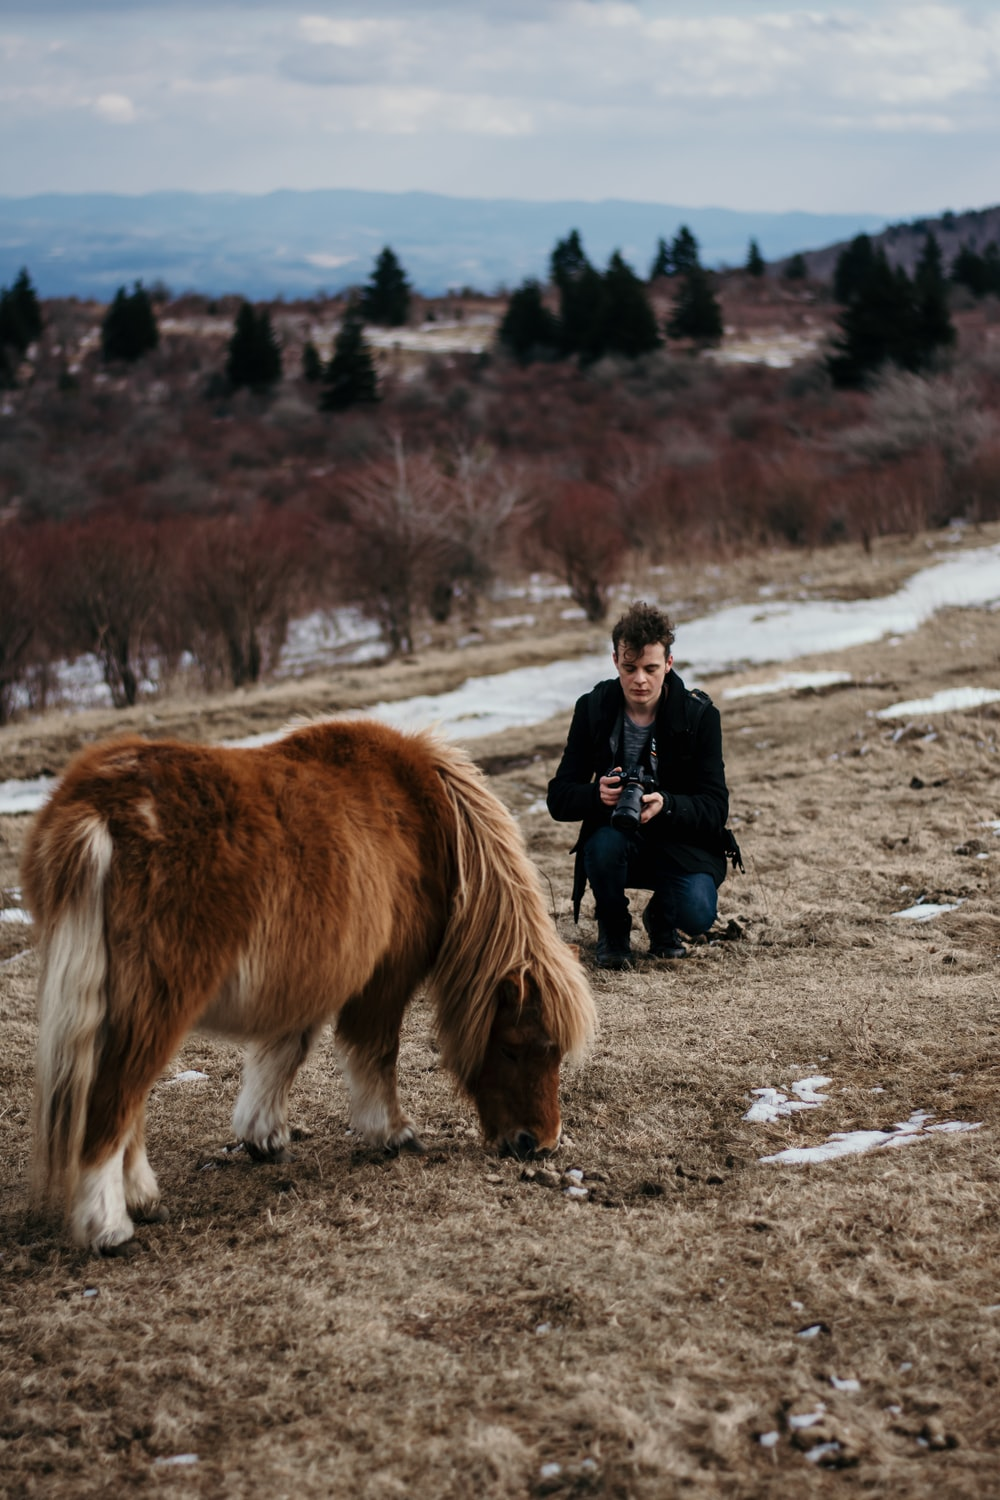 person in front of pony during daytime